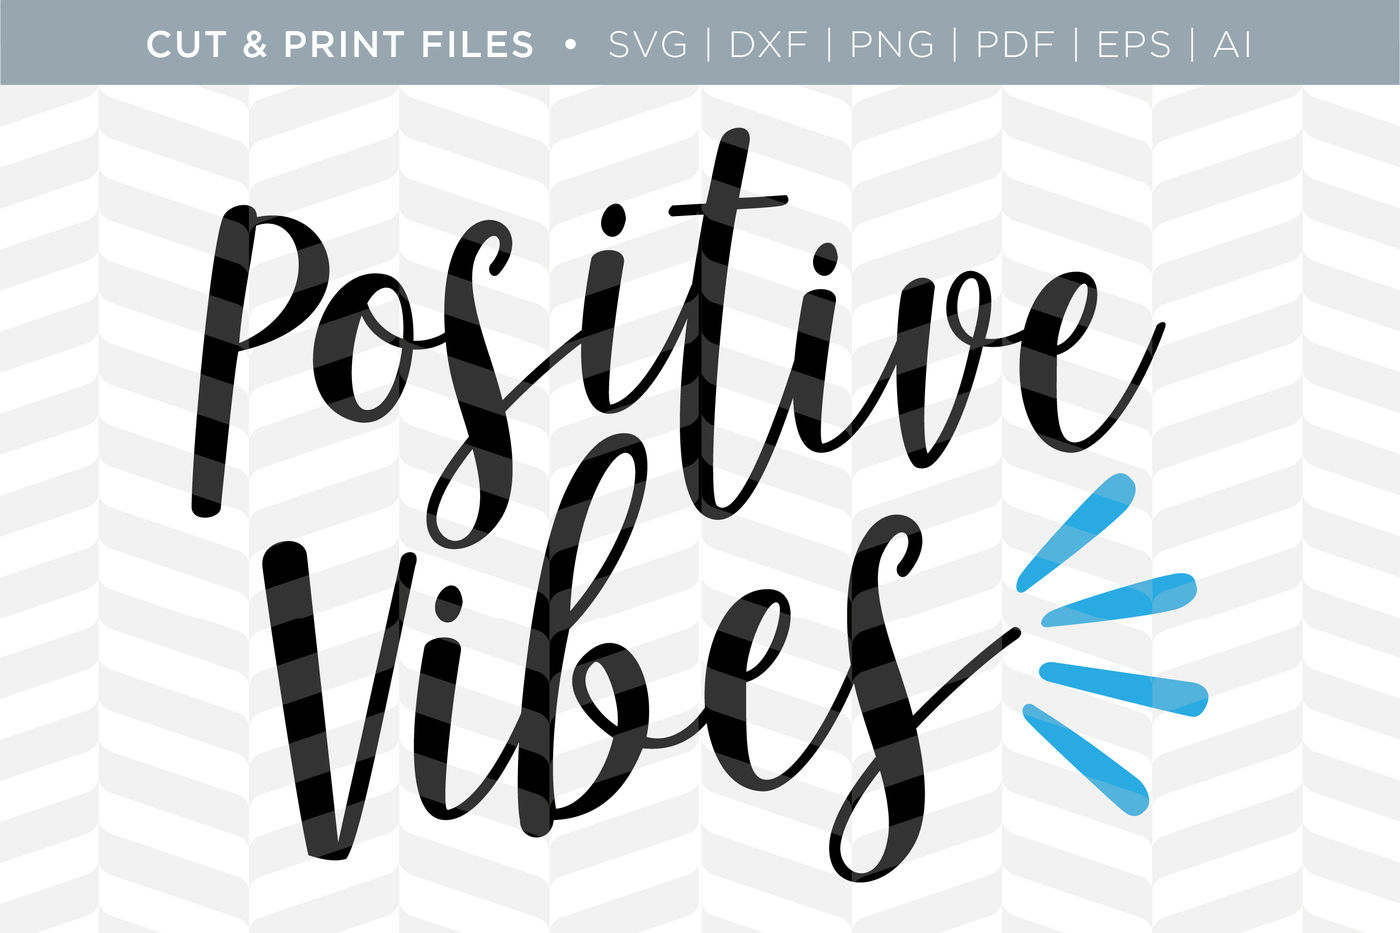 Positive Vibes Png Free Positive Vibes Png Transparent Images 62051 Pngio